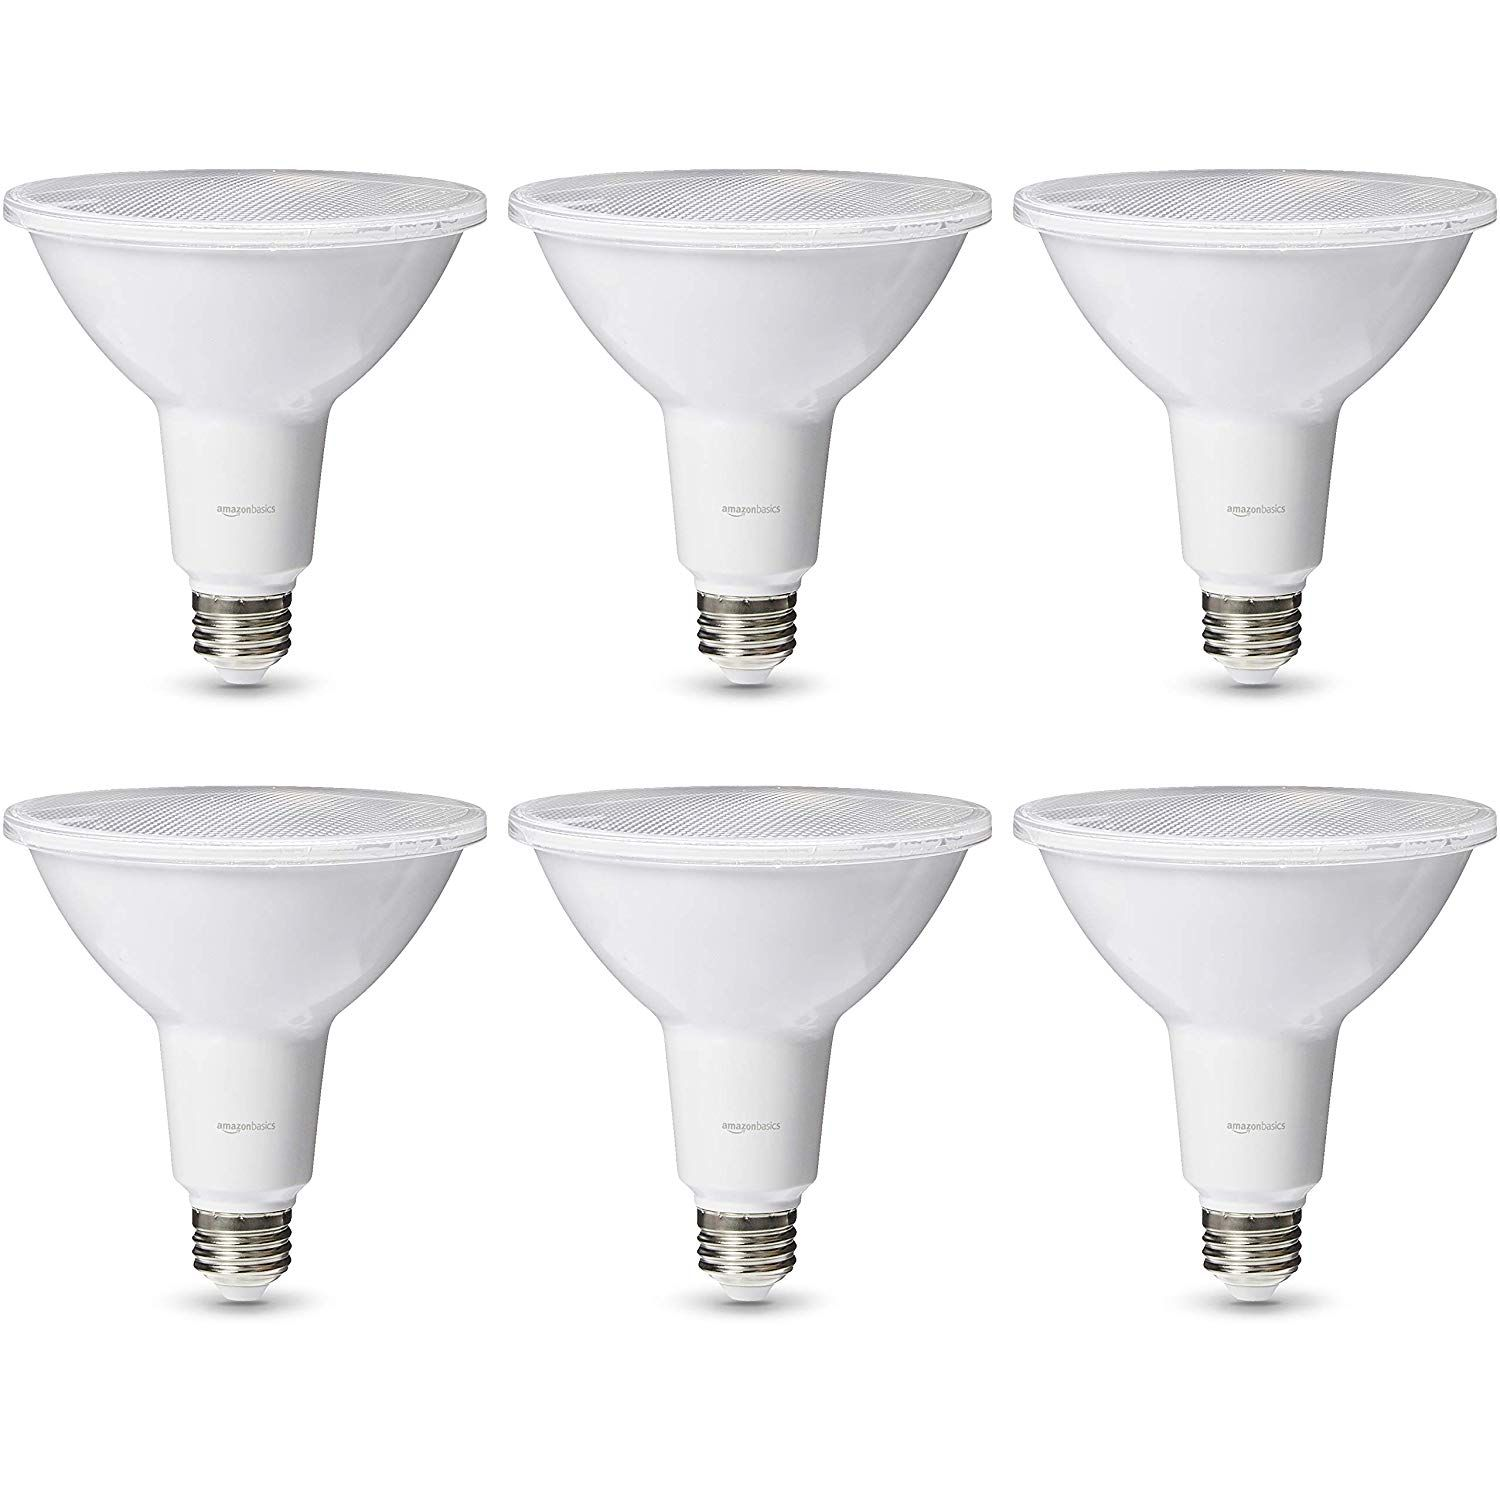 Amazonbasics 120 Watt 25 000 Hours Dimmable 1200 Lumens Led Par38 Light Bulb Pack Of 6 Soft White Light Bulb Led Light Bulb Led Bulb